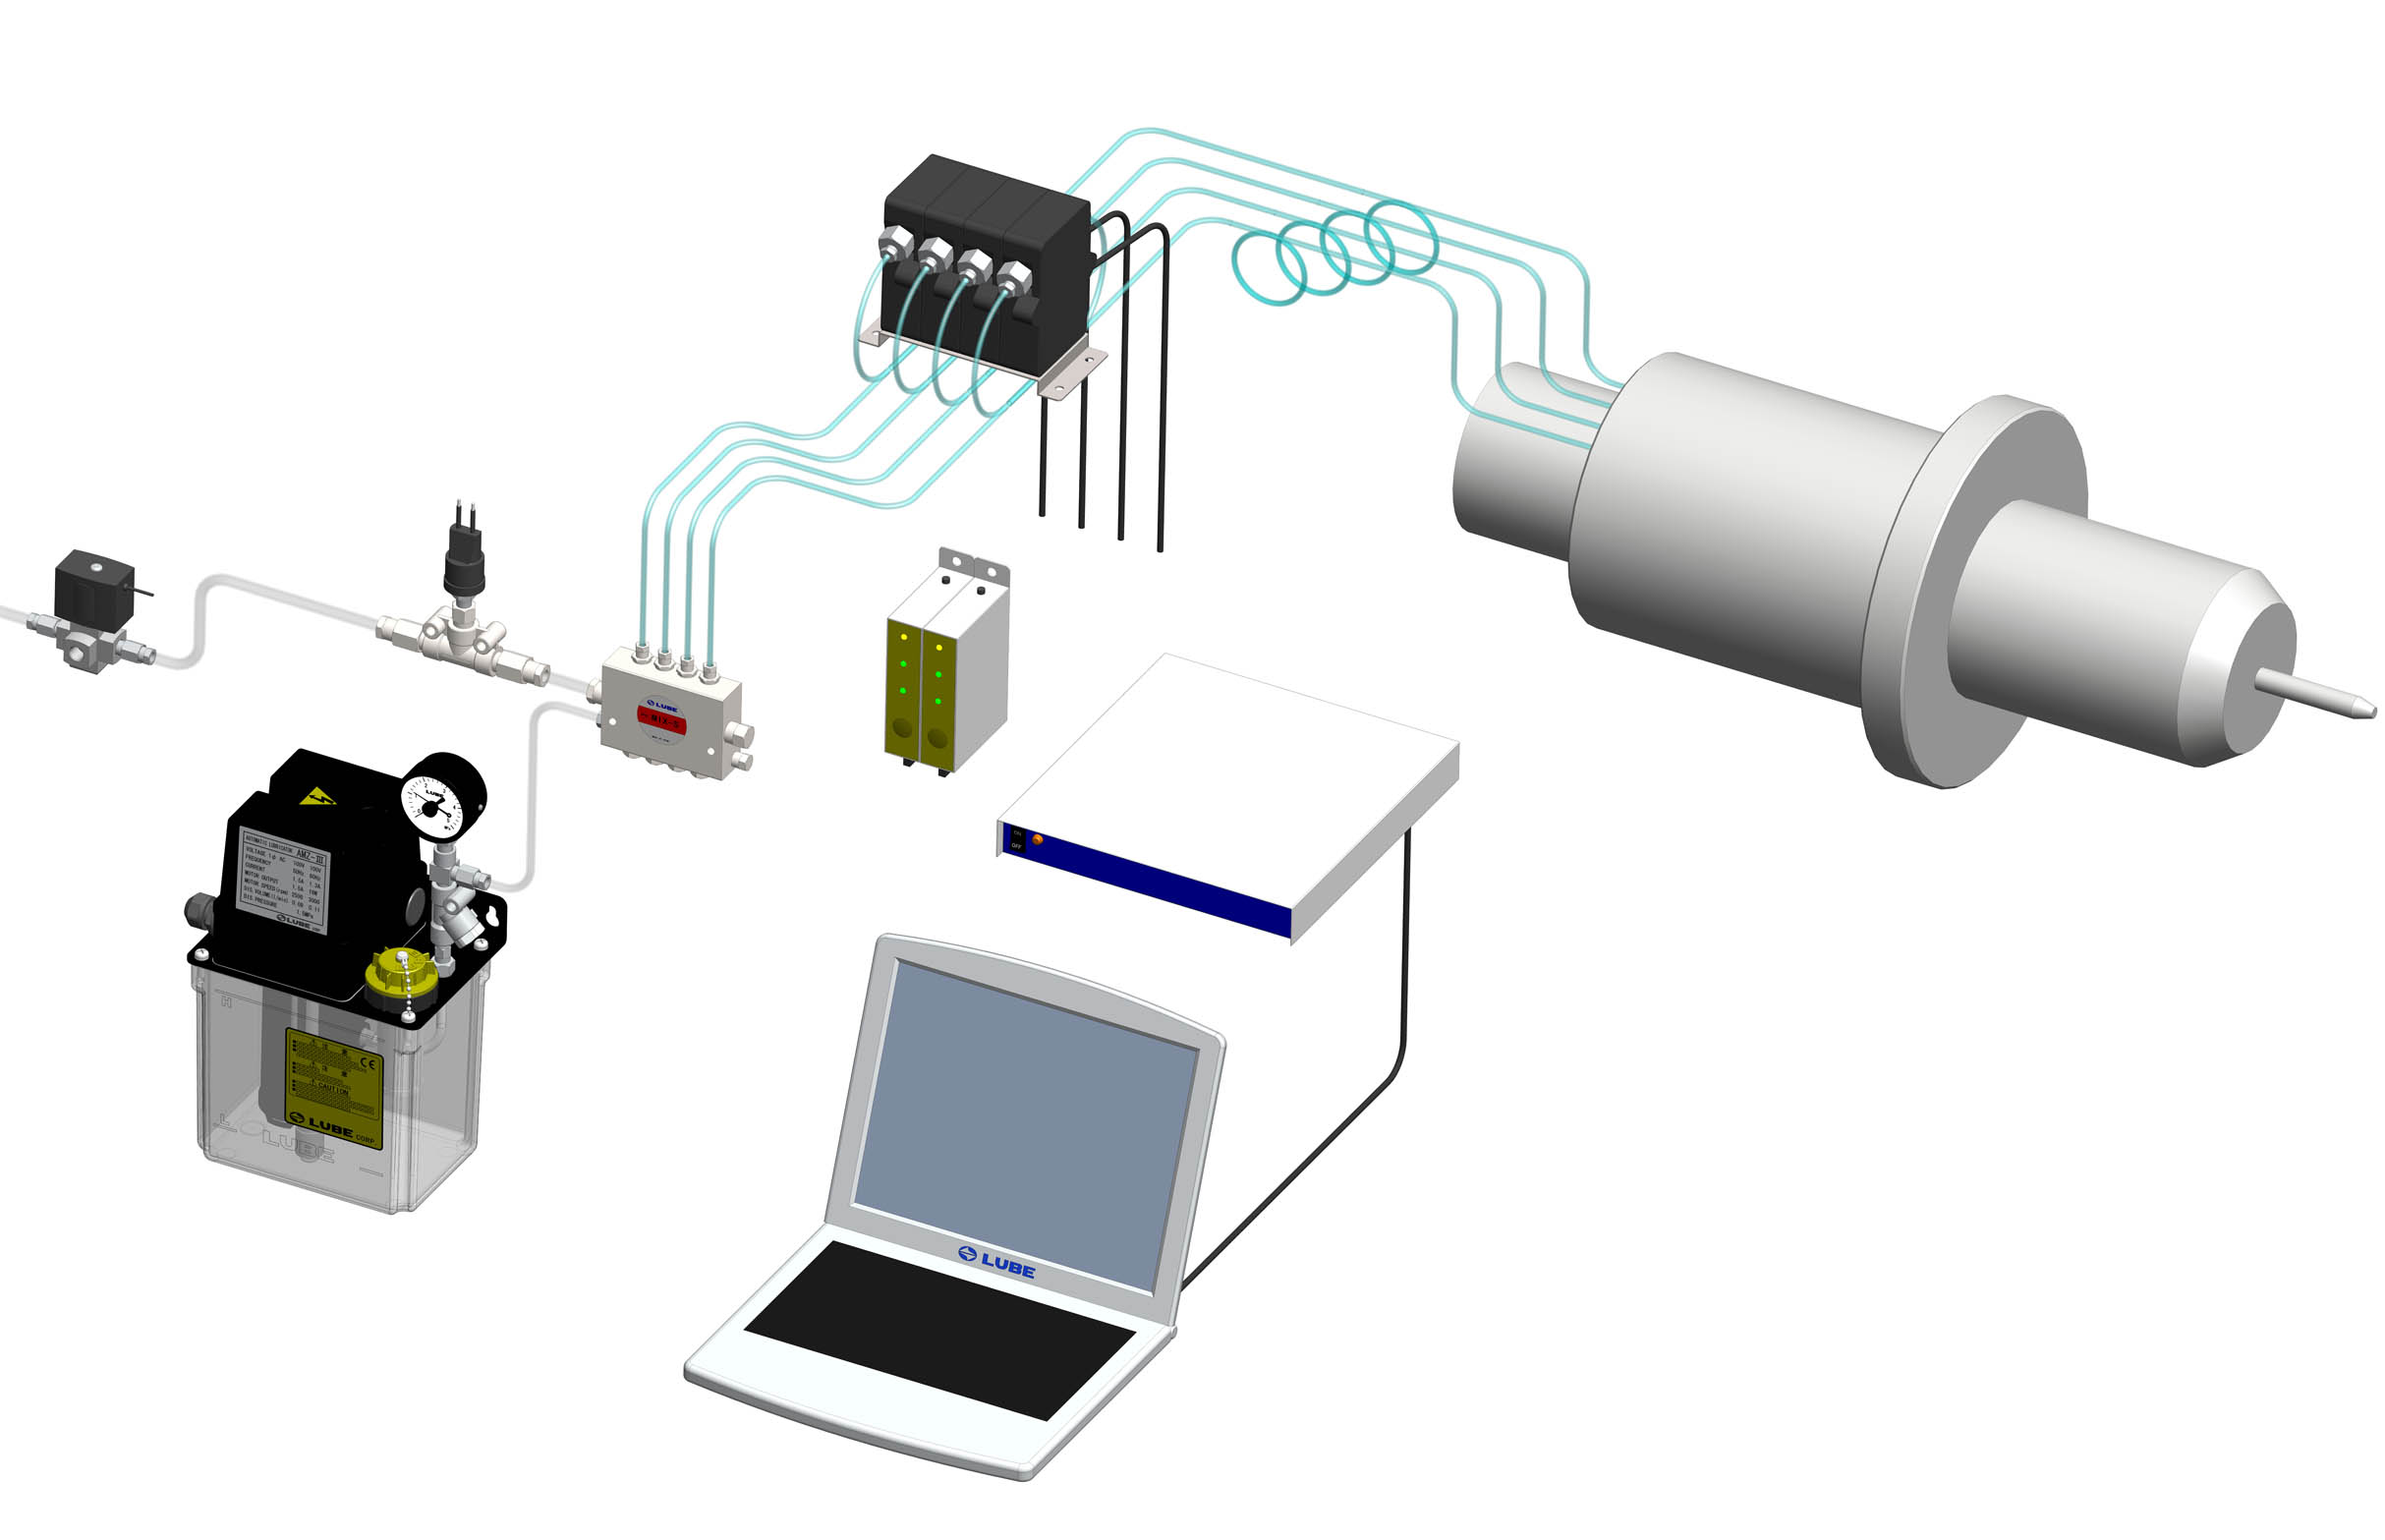 Spindle Lubrication Systems & Monitoring